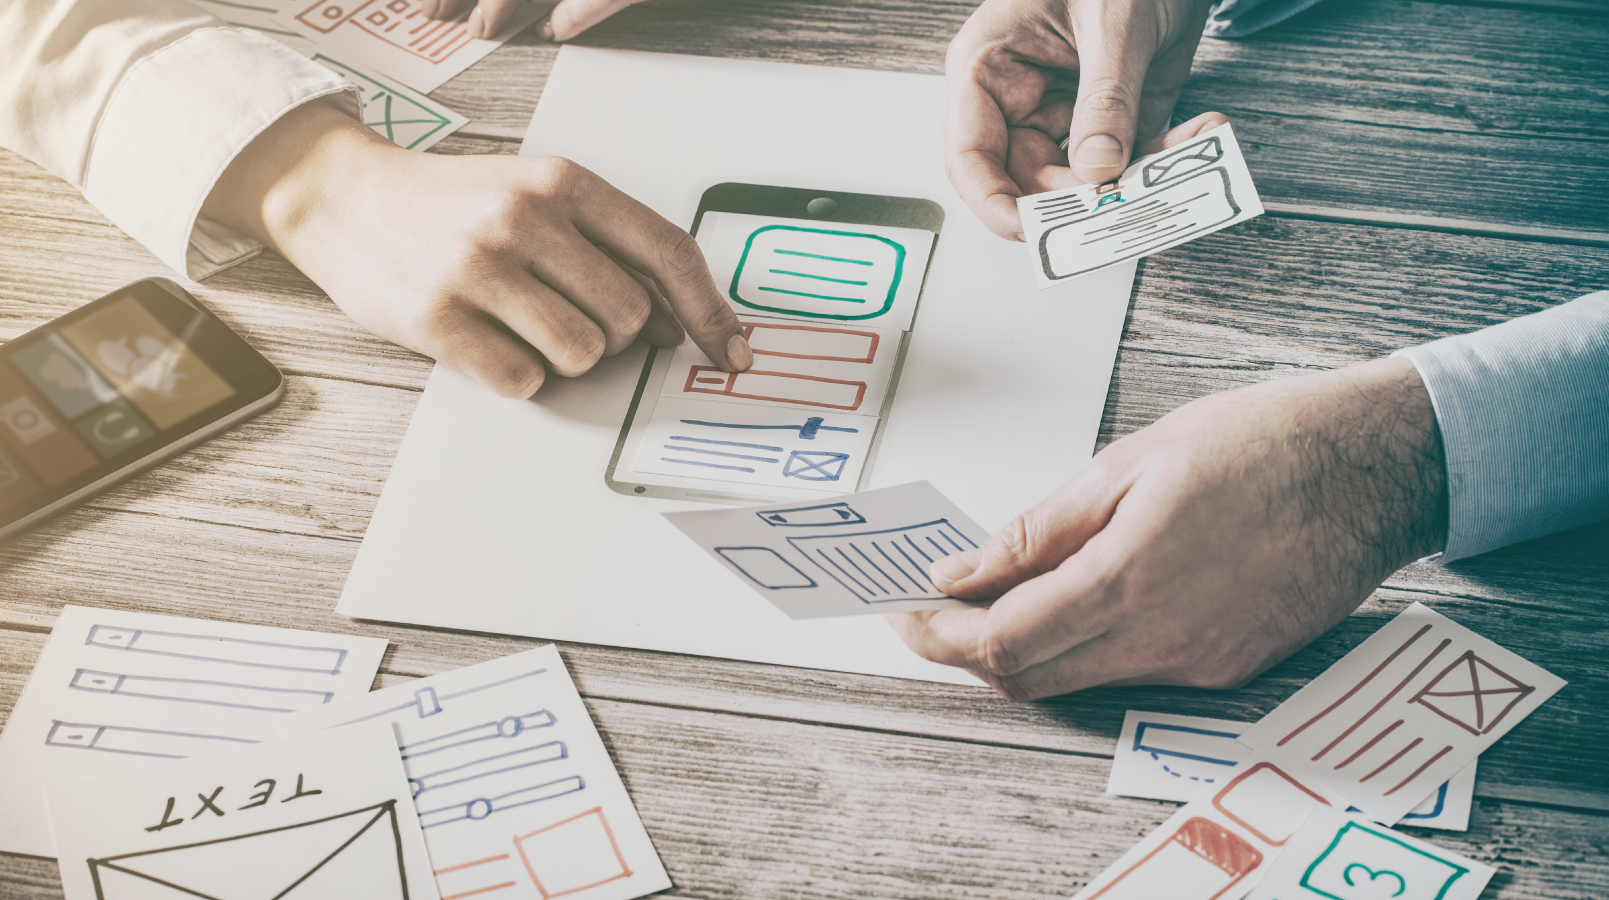 6 ux design mistakes costing companies millions for Top product design firms